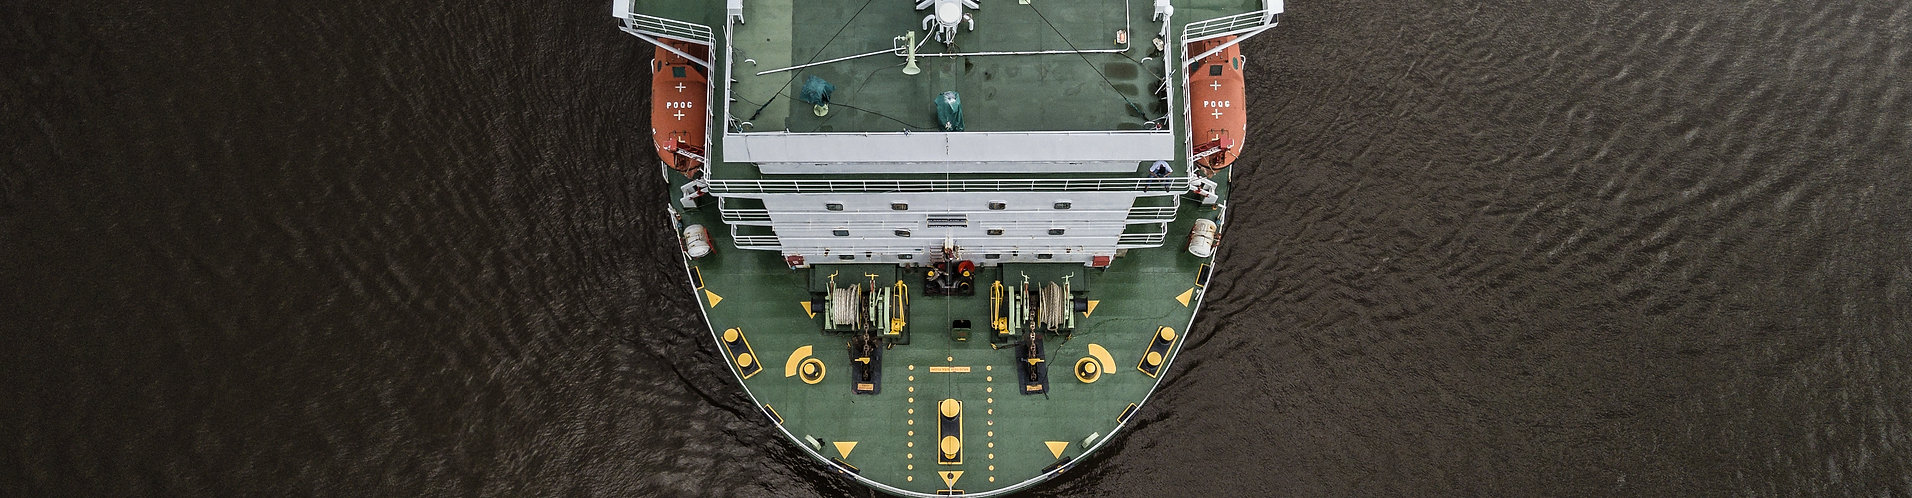 huge-export-container-ship-shot-from-hig